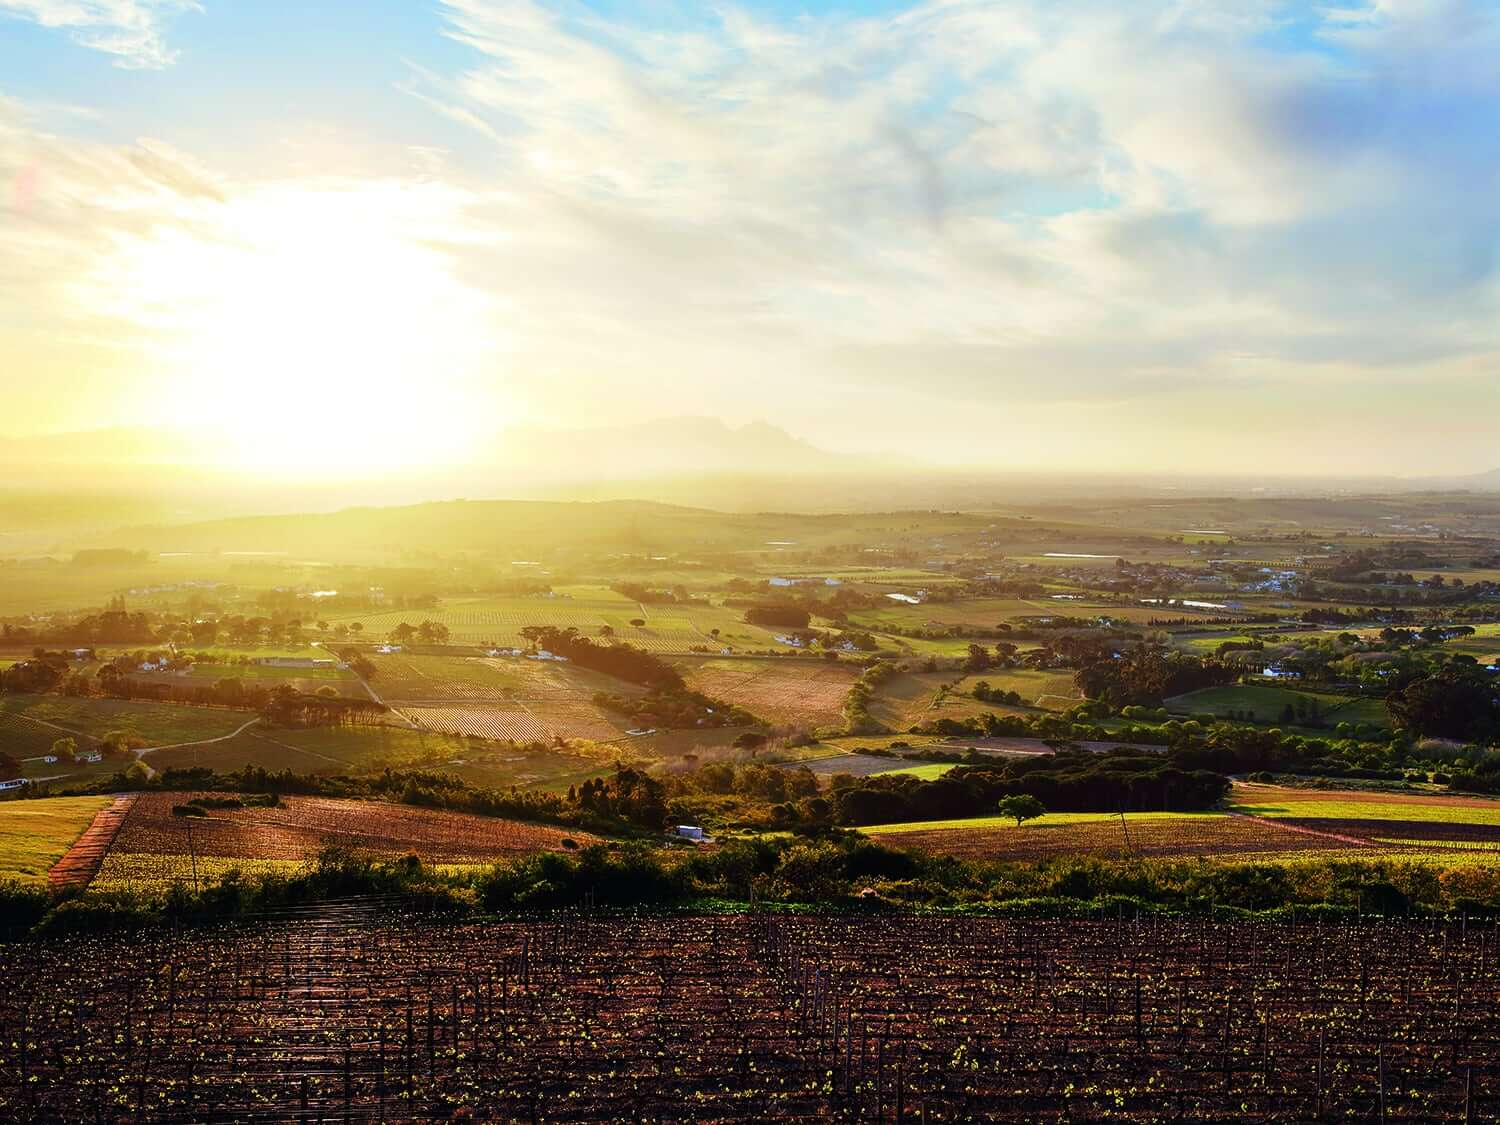 Picture-perfect sunrise view across the vineyards at Spier Wine Estate, South Africa.